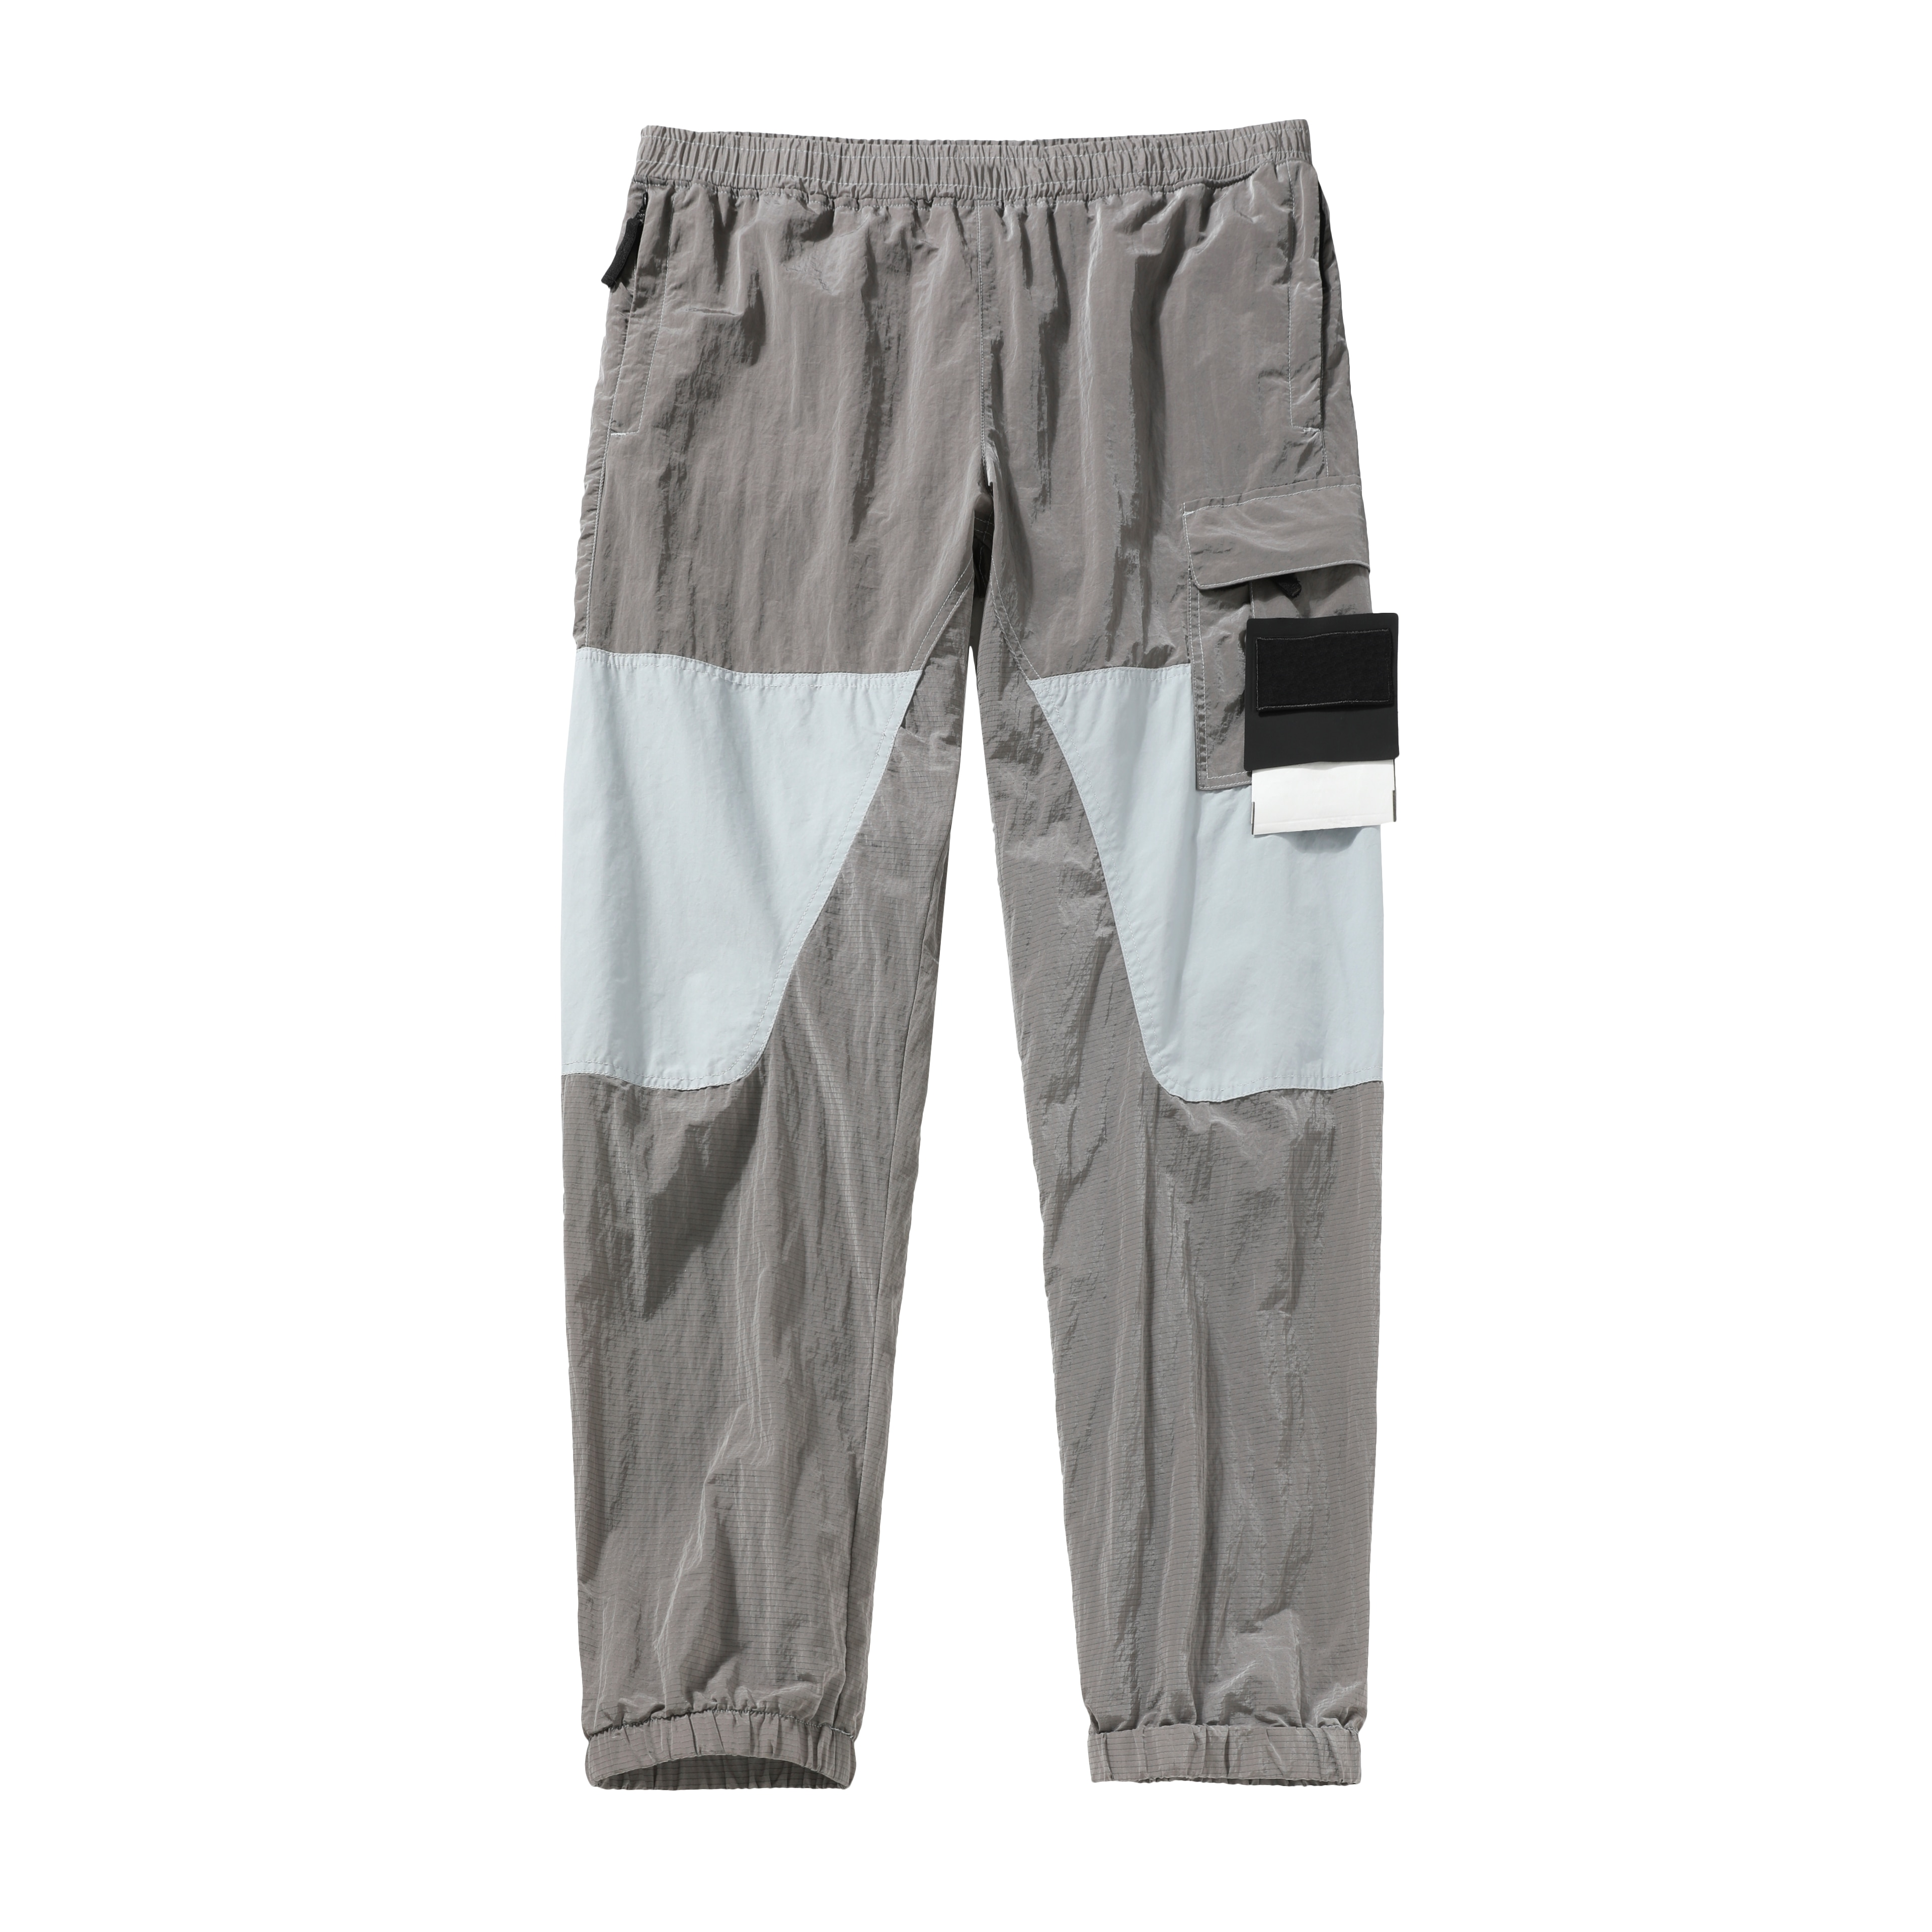 Spring and autumn men's new nylon guard pants compass fashion brand men's casual pants 2021 high quality sports pants2021